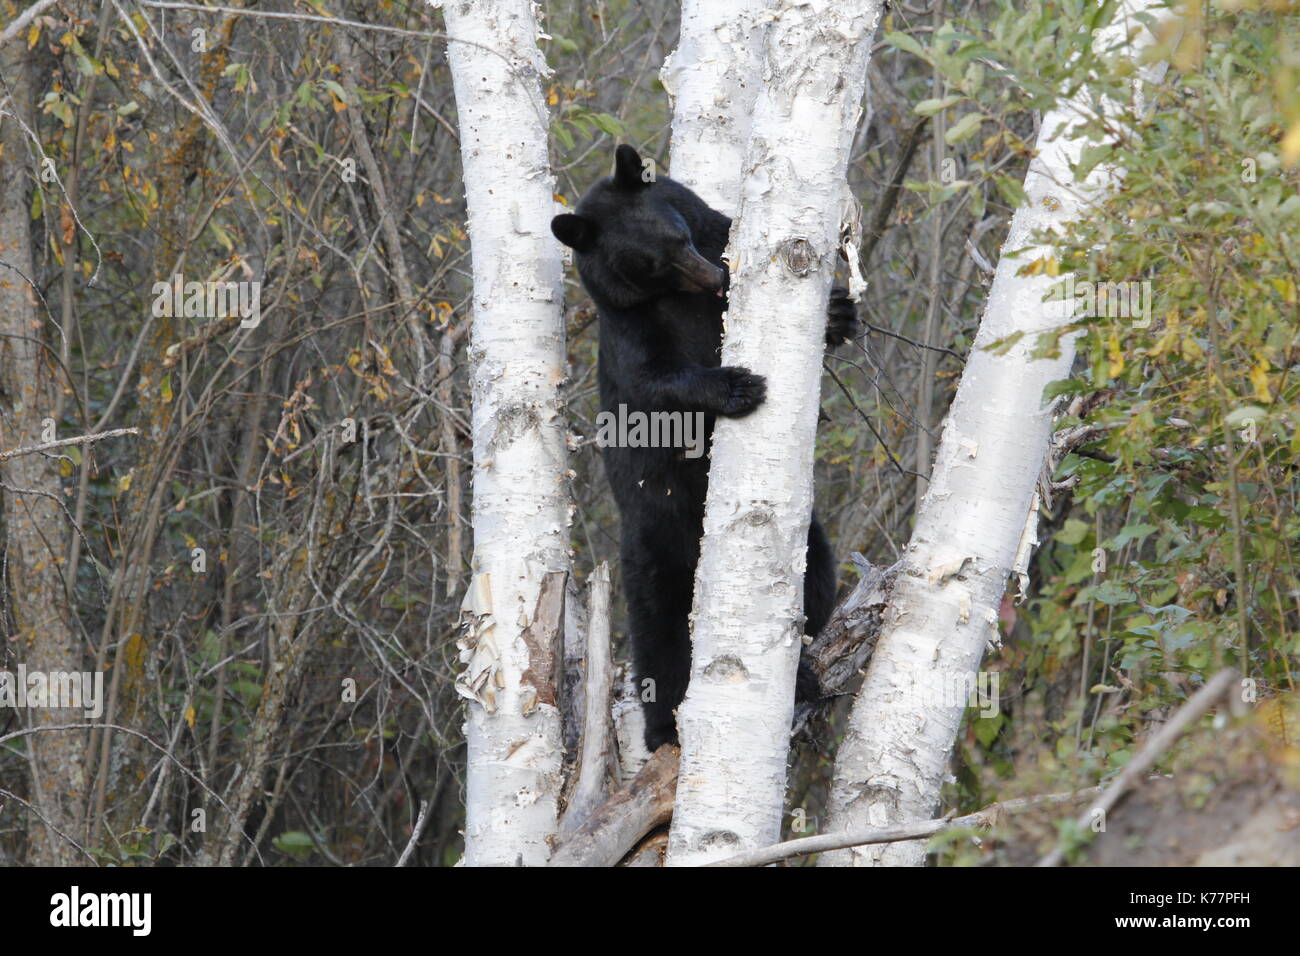 Black bear standing and chewing birch bark trees - Stock Image